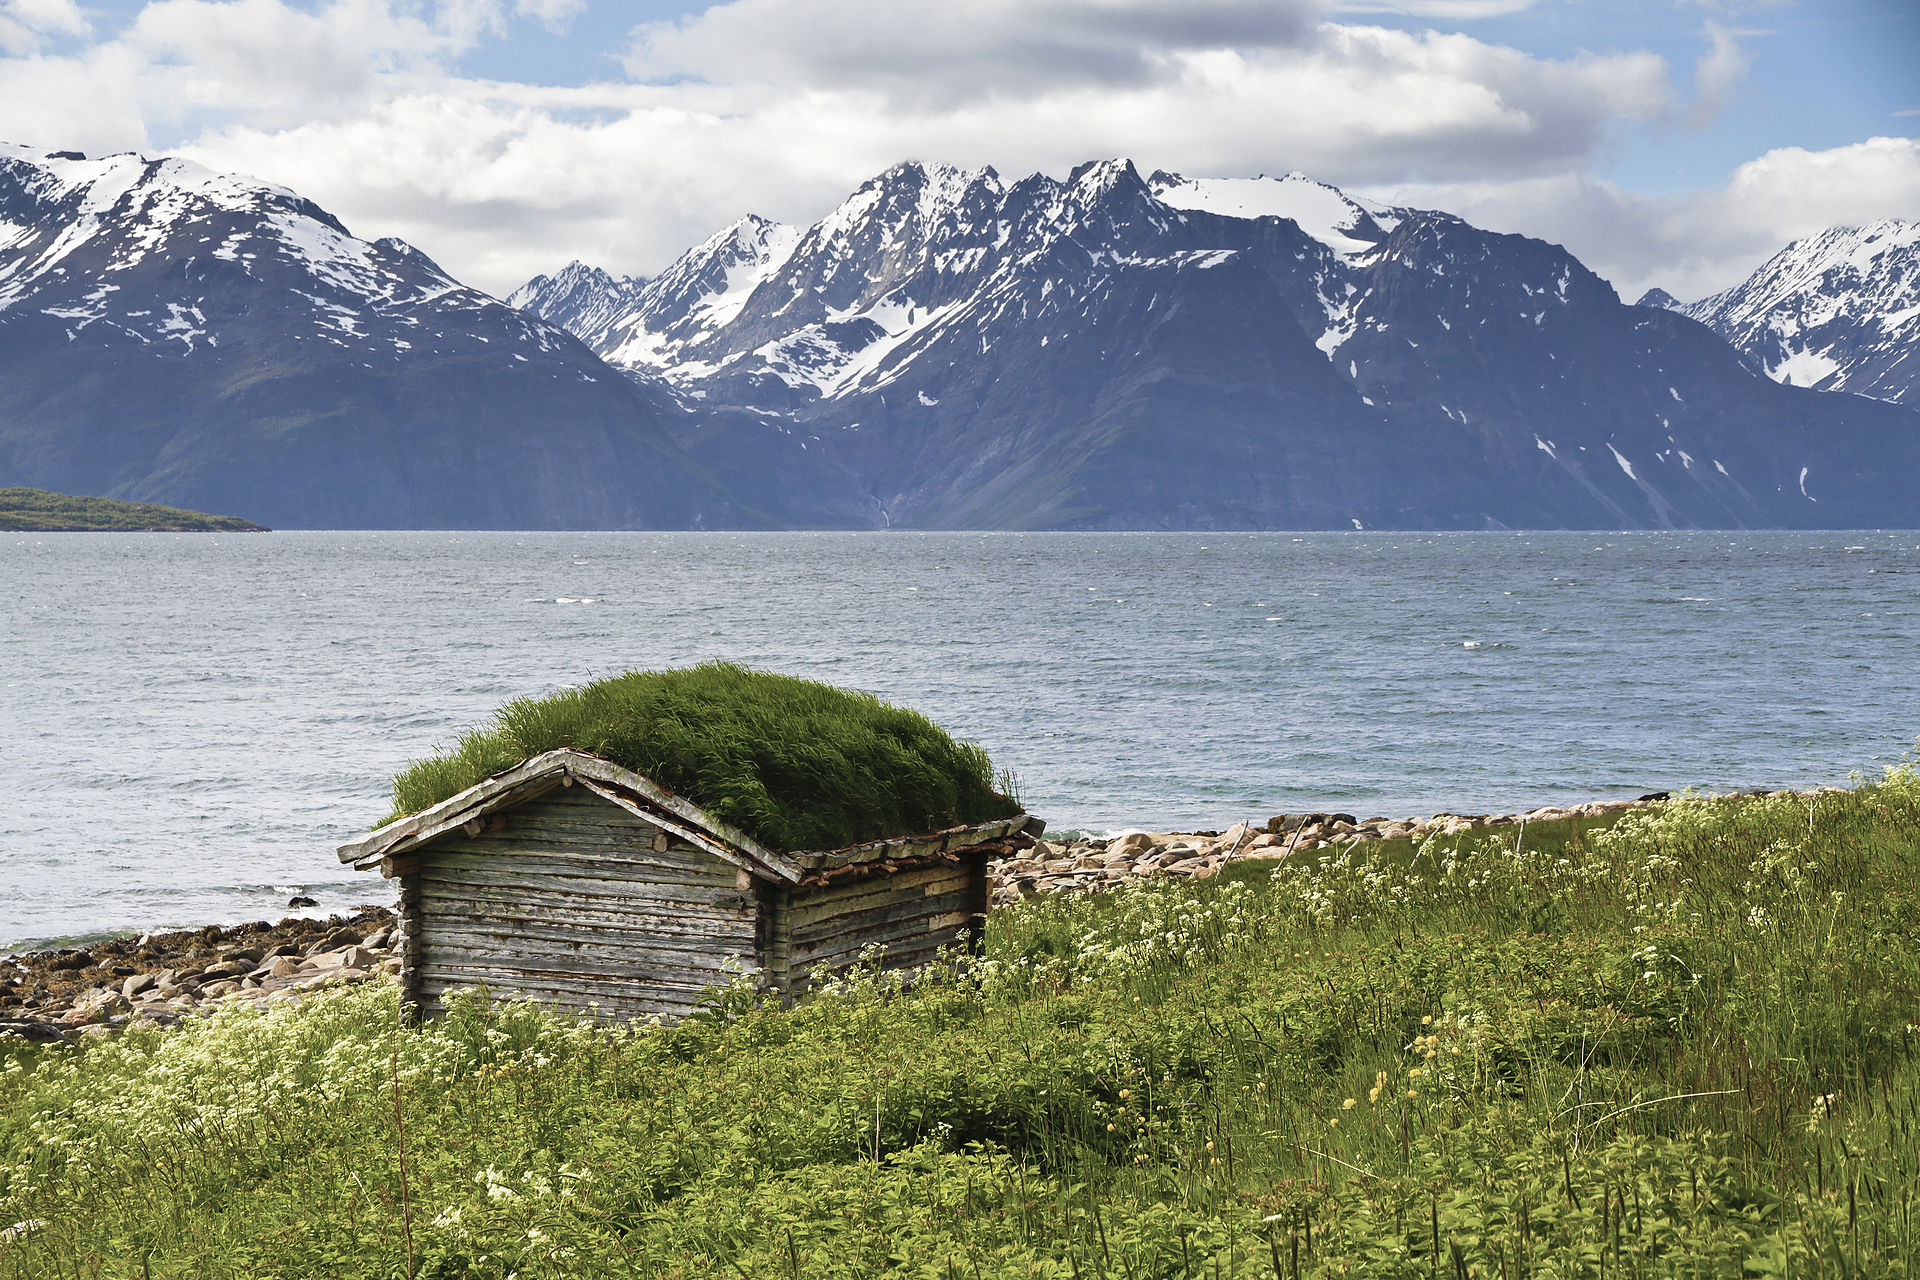 Shed_with_green_roof_at_Lyngen_fjord,_2012_June.jpg